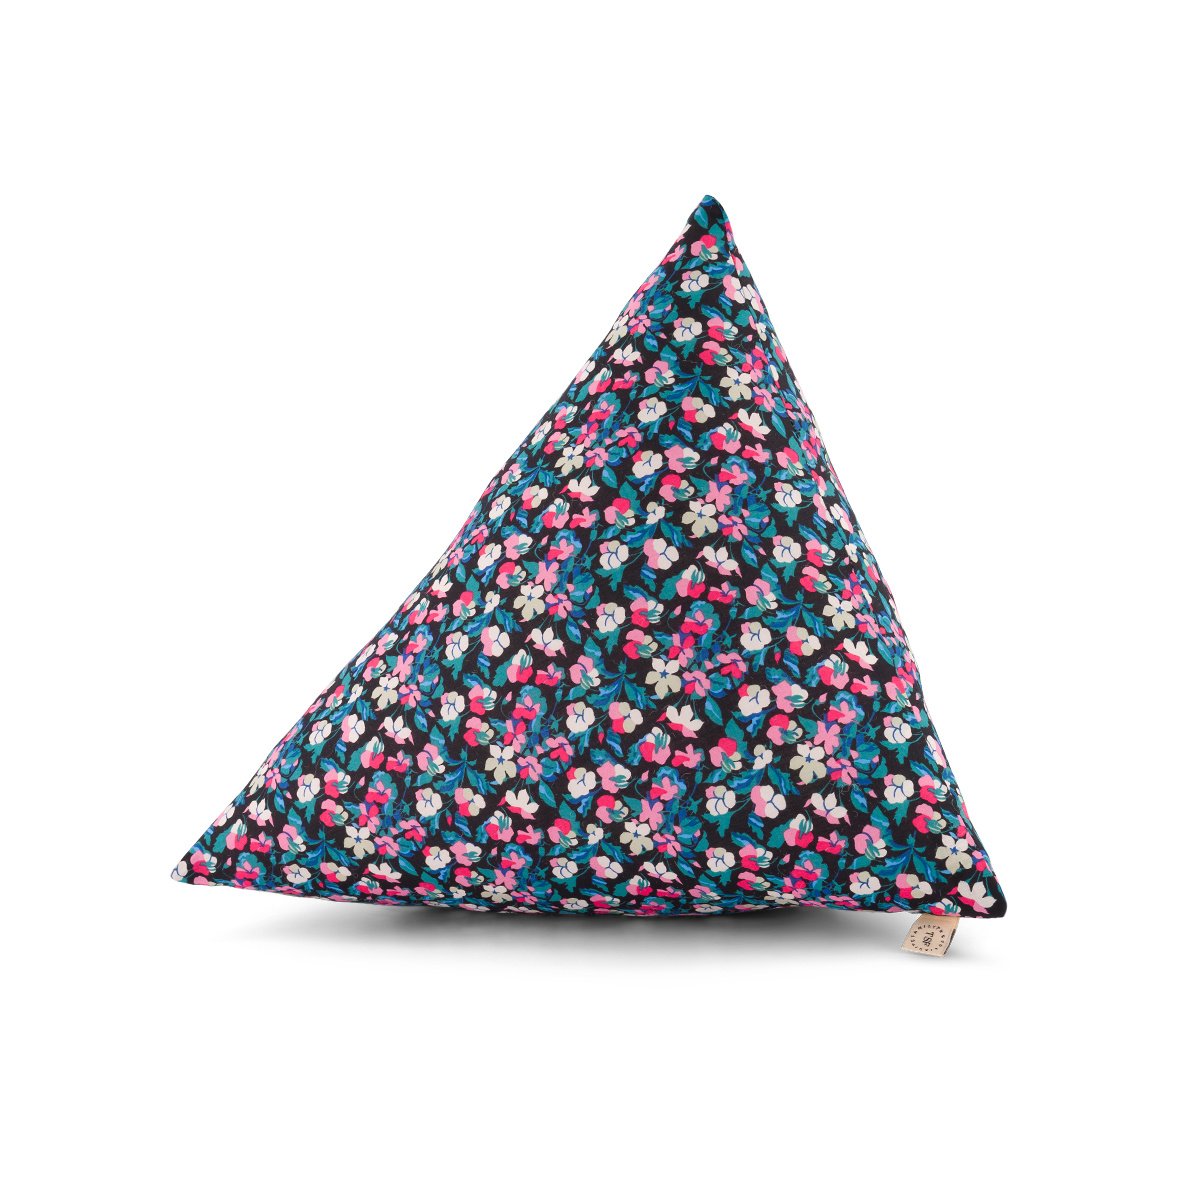 Divino Cushion, pink and blue Liberty cotton